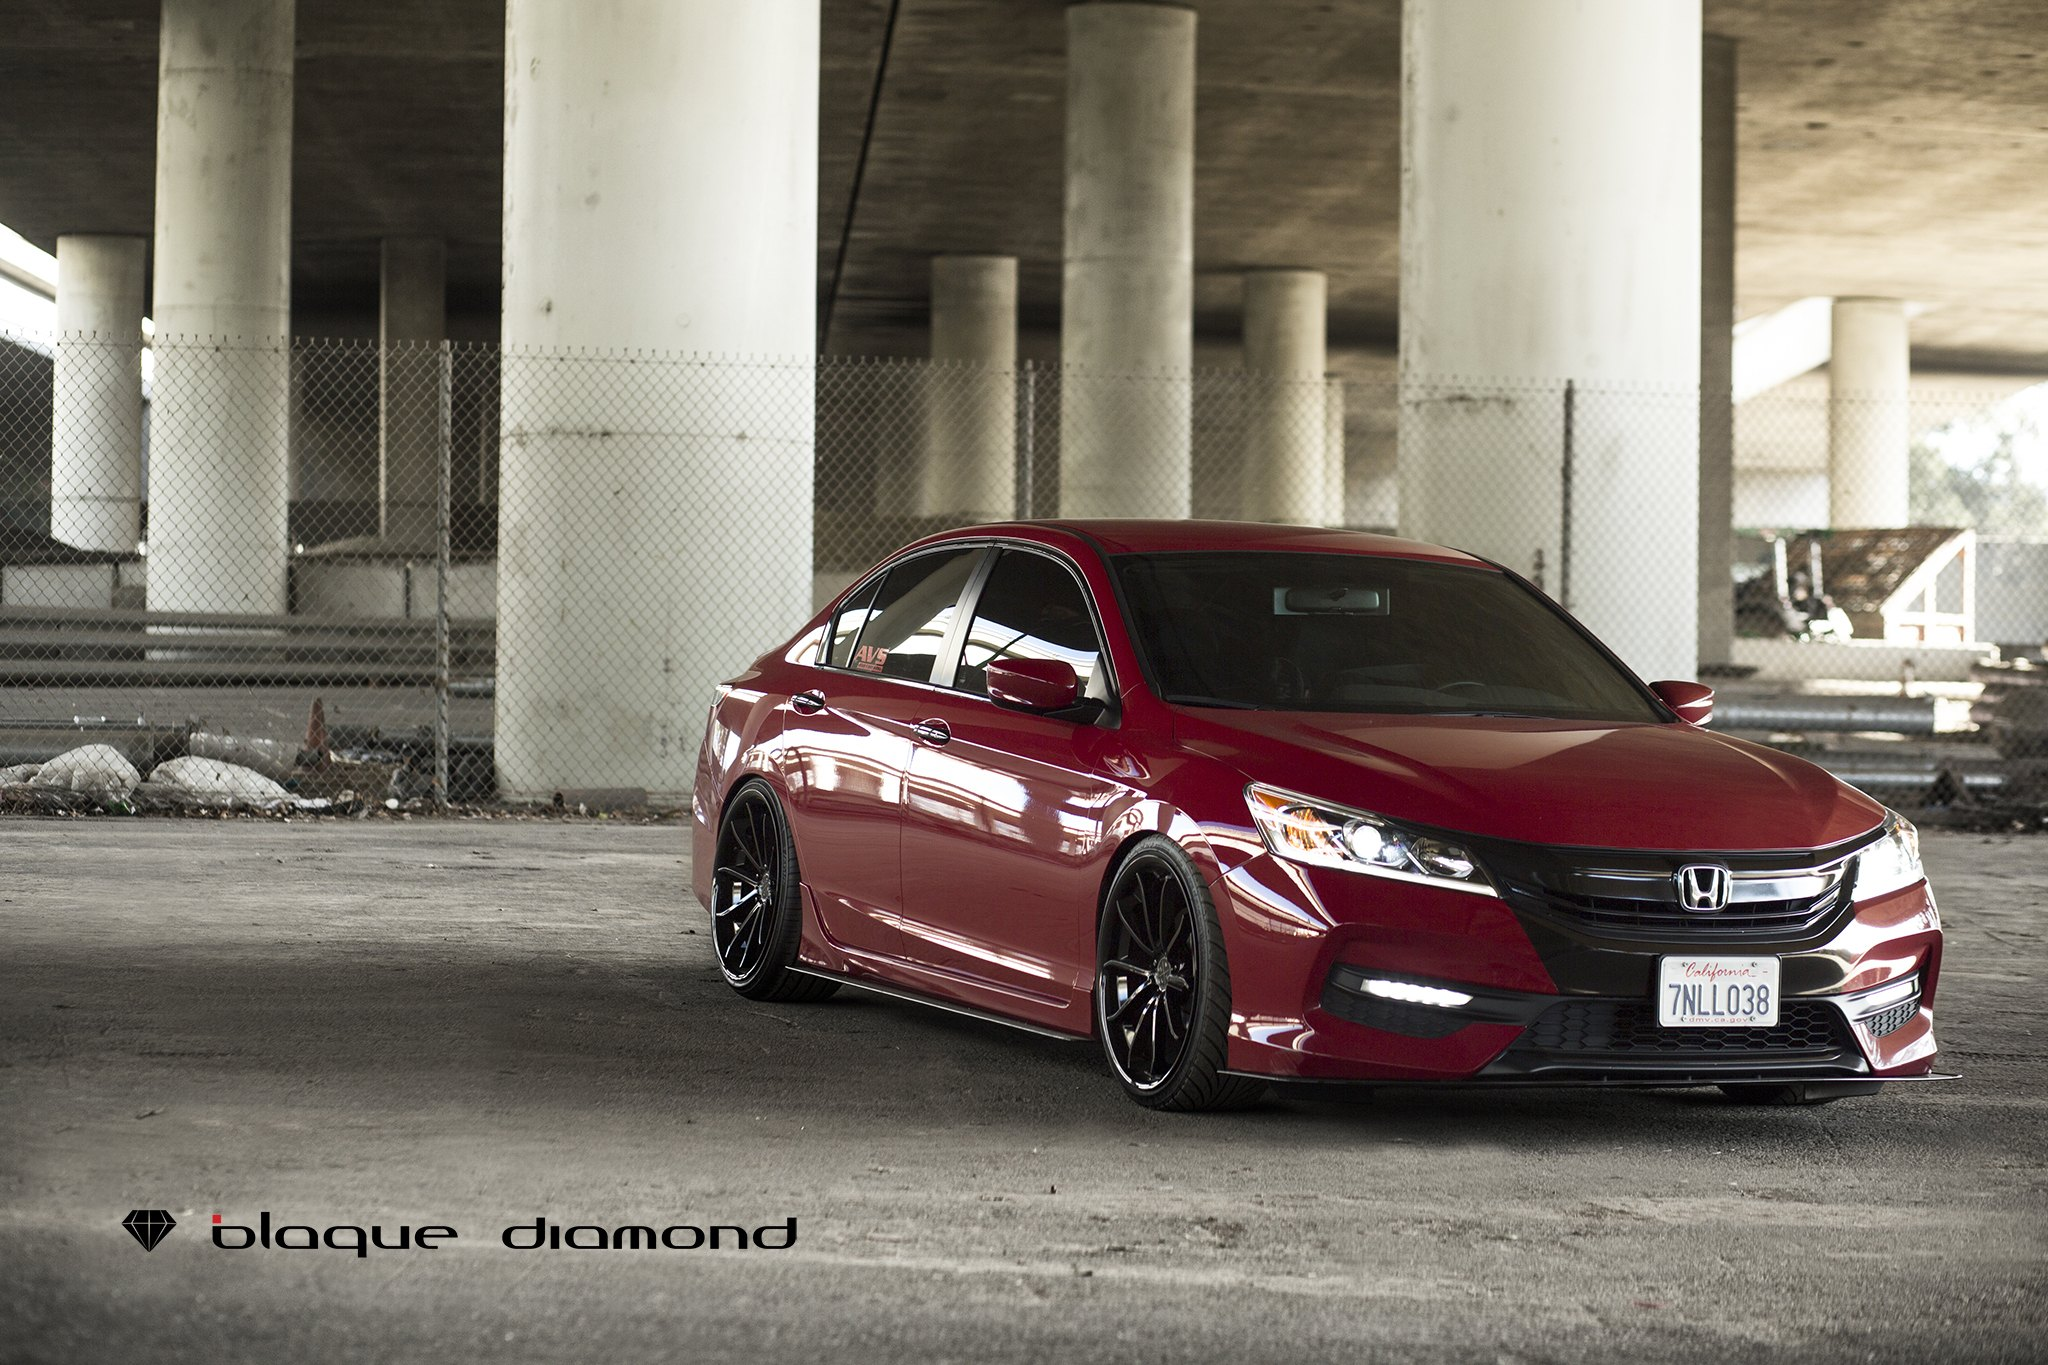 Custom 2015 honda accord images mods photos upgrades - 2015 honda accord interior illumination ...